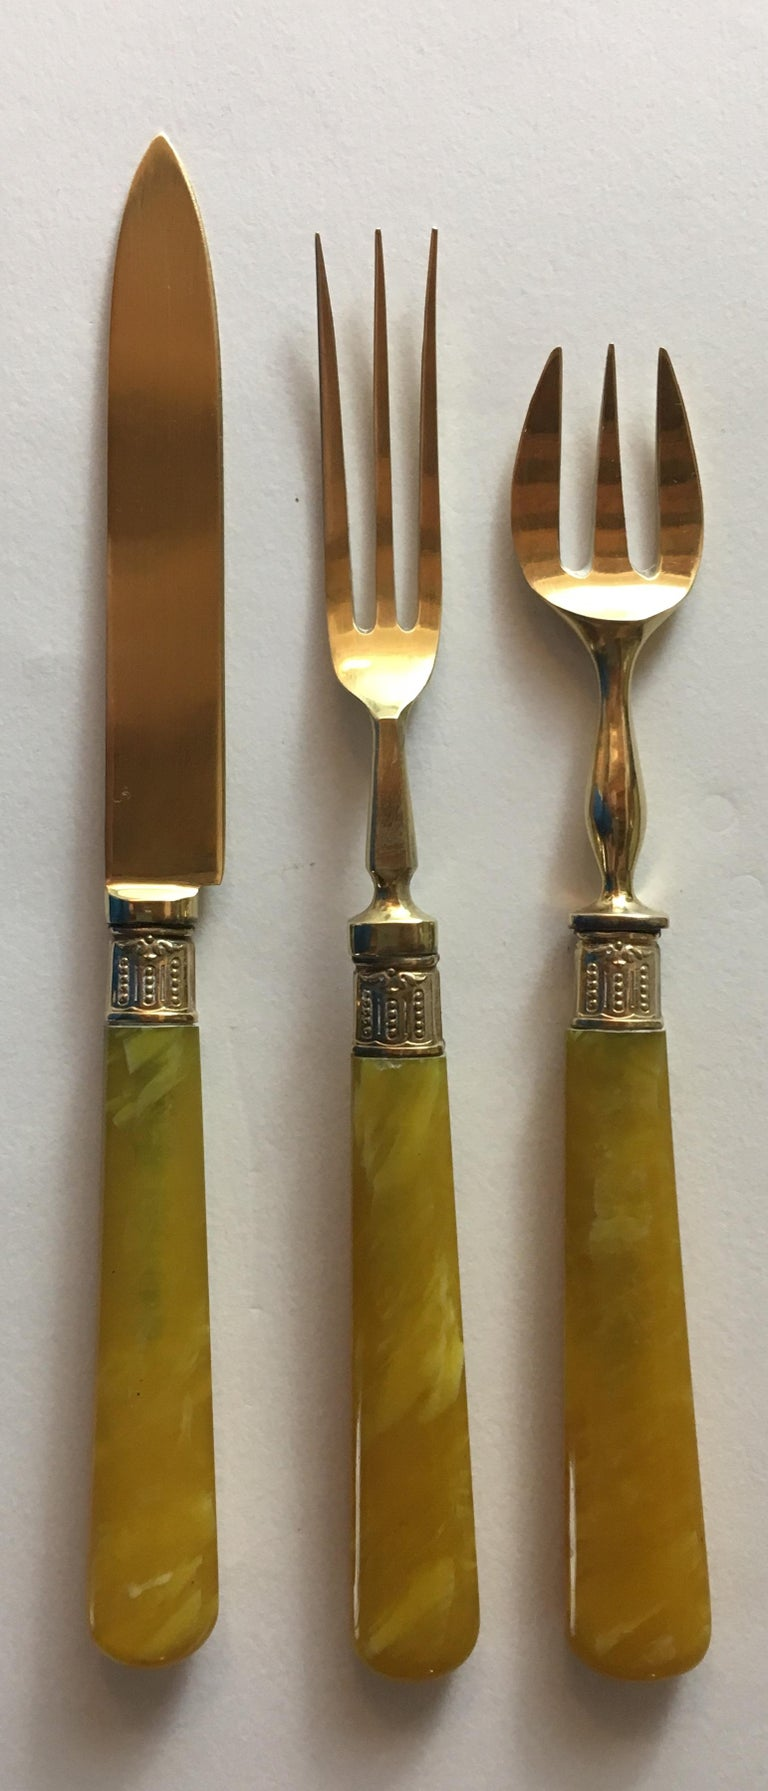 Set of 36 Antique Mother-of-Pearl Handled Knives and Forks, Gold Ferrules In Good Condition For Sale In Arles, FR